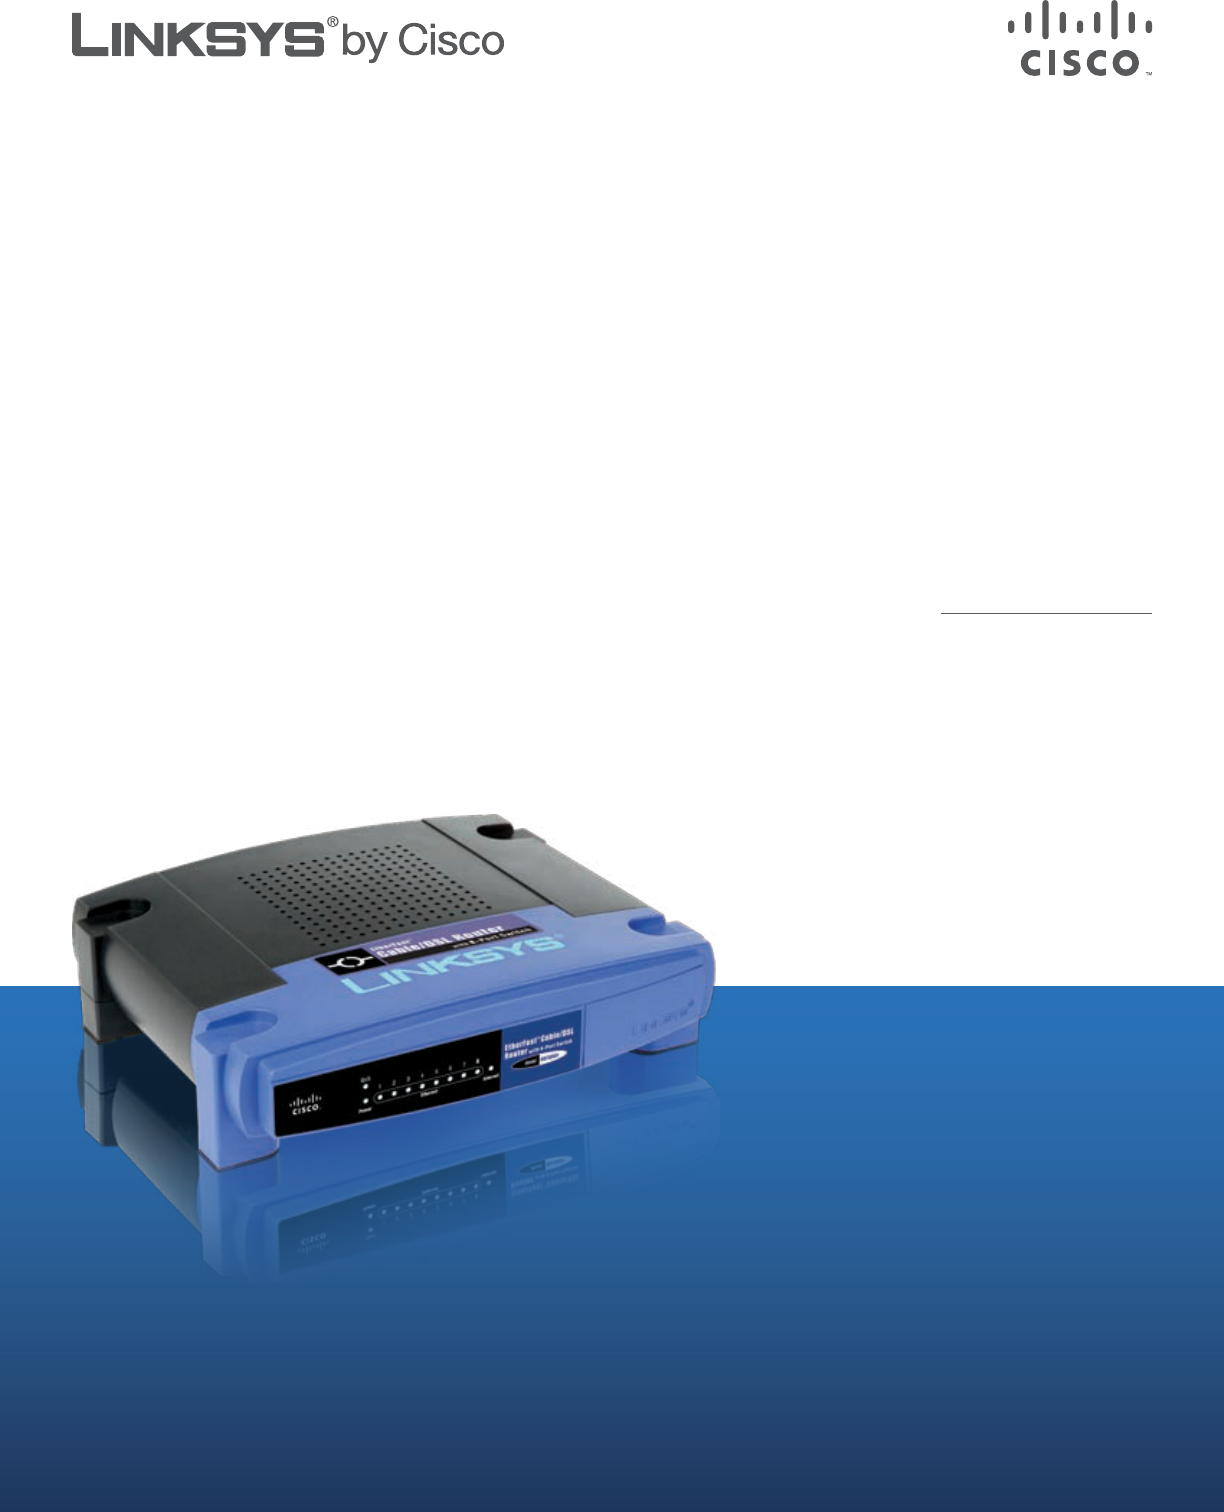 Handleiding Linksys Befsr81 Etherfast Cable Dsl Router Pagina 1 Van